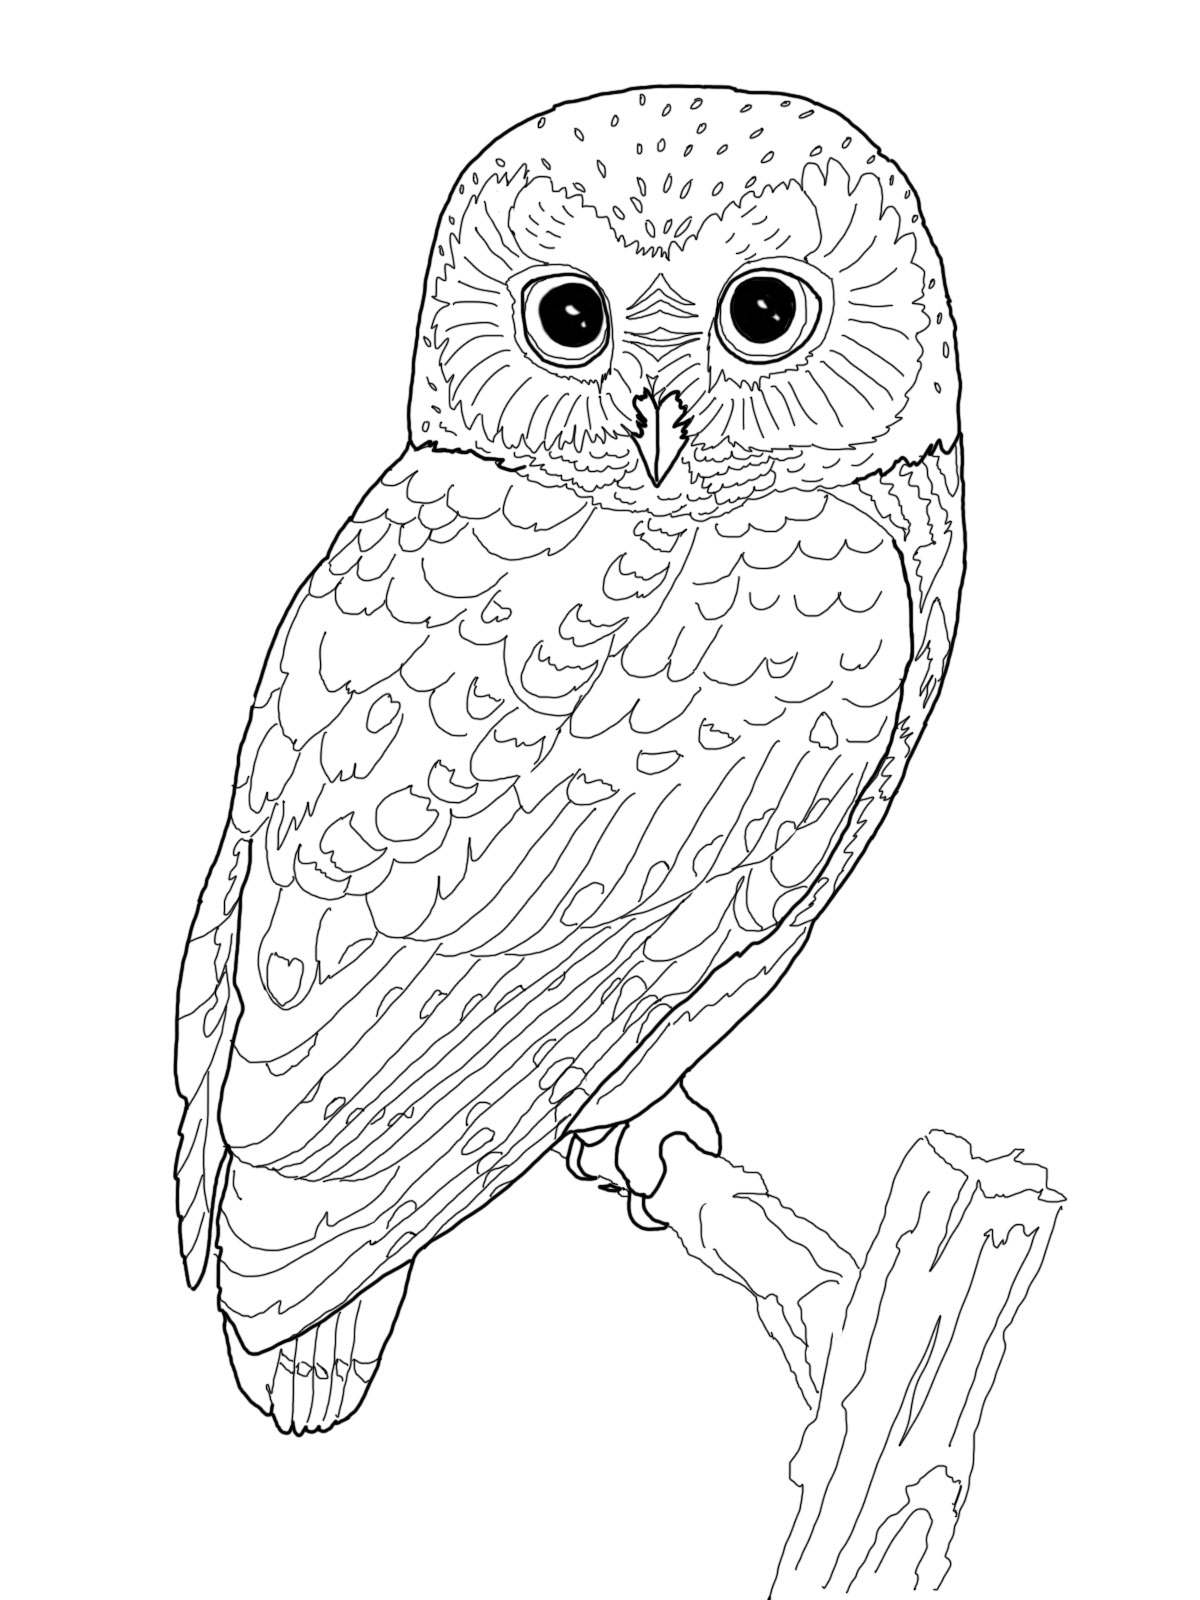 free owl coloring pages owl coloring page clipart free stock photo public domain owl coloring pages free